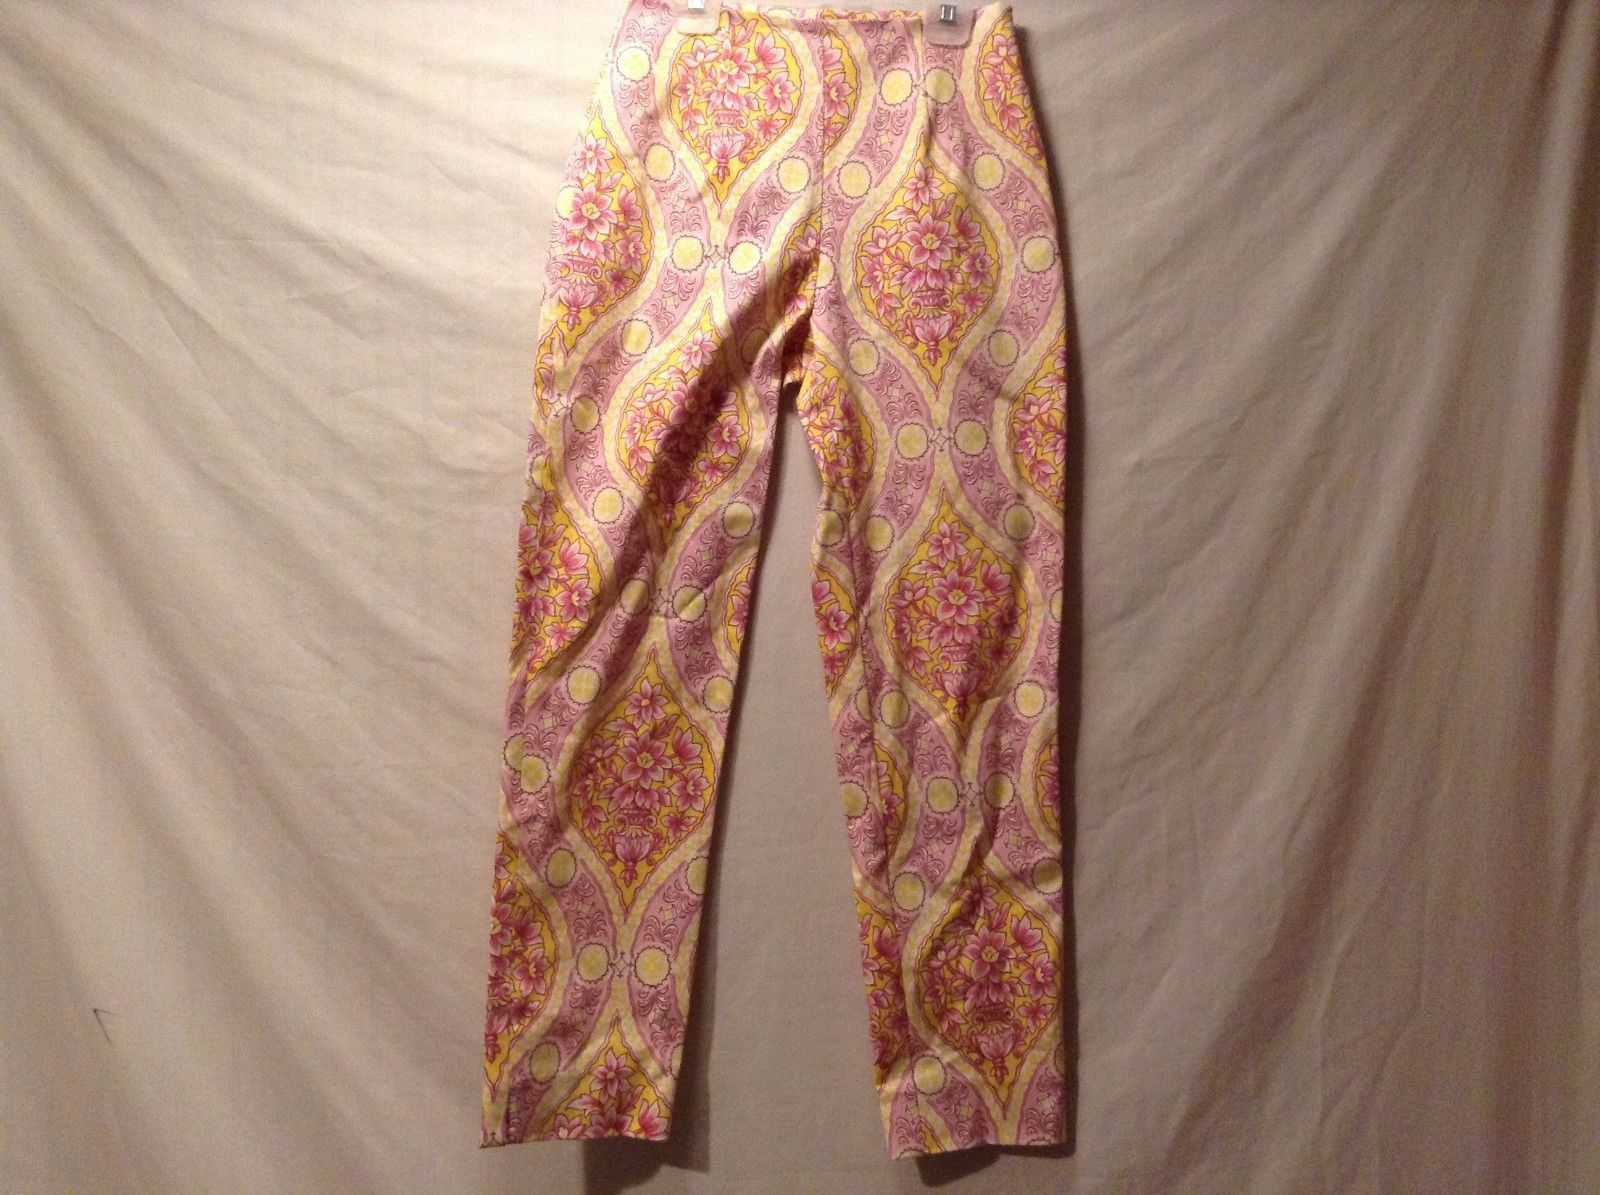 Used Great Condition Leggiadro Pink Yellow White Floral Pants Cotton Blend